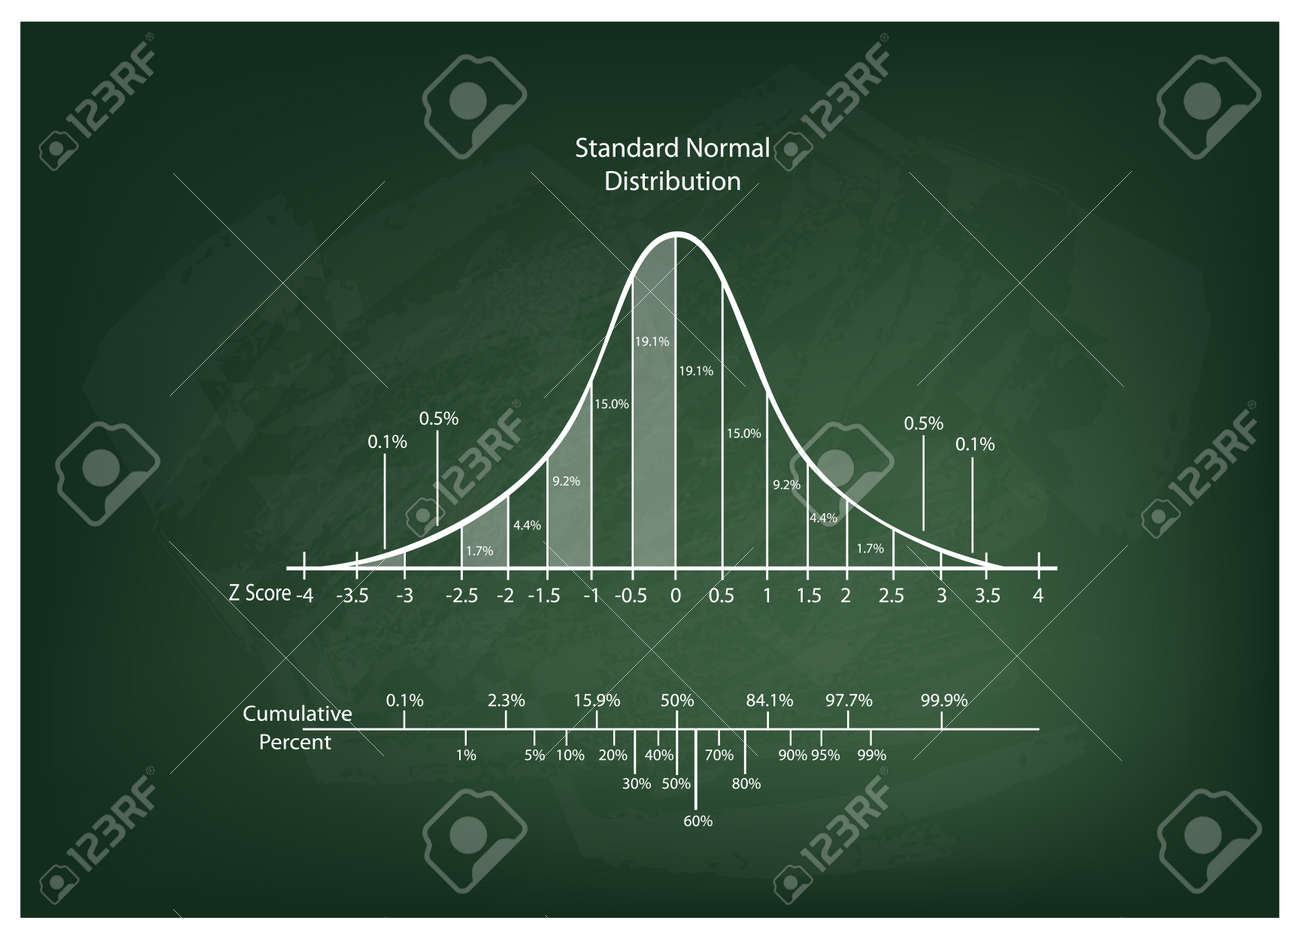 Business and Marketing Concepts, Illustration of Gaussian, Bell or Normal Distribution Diagram on Chalkboard Background. - 61524359